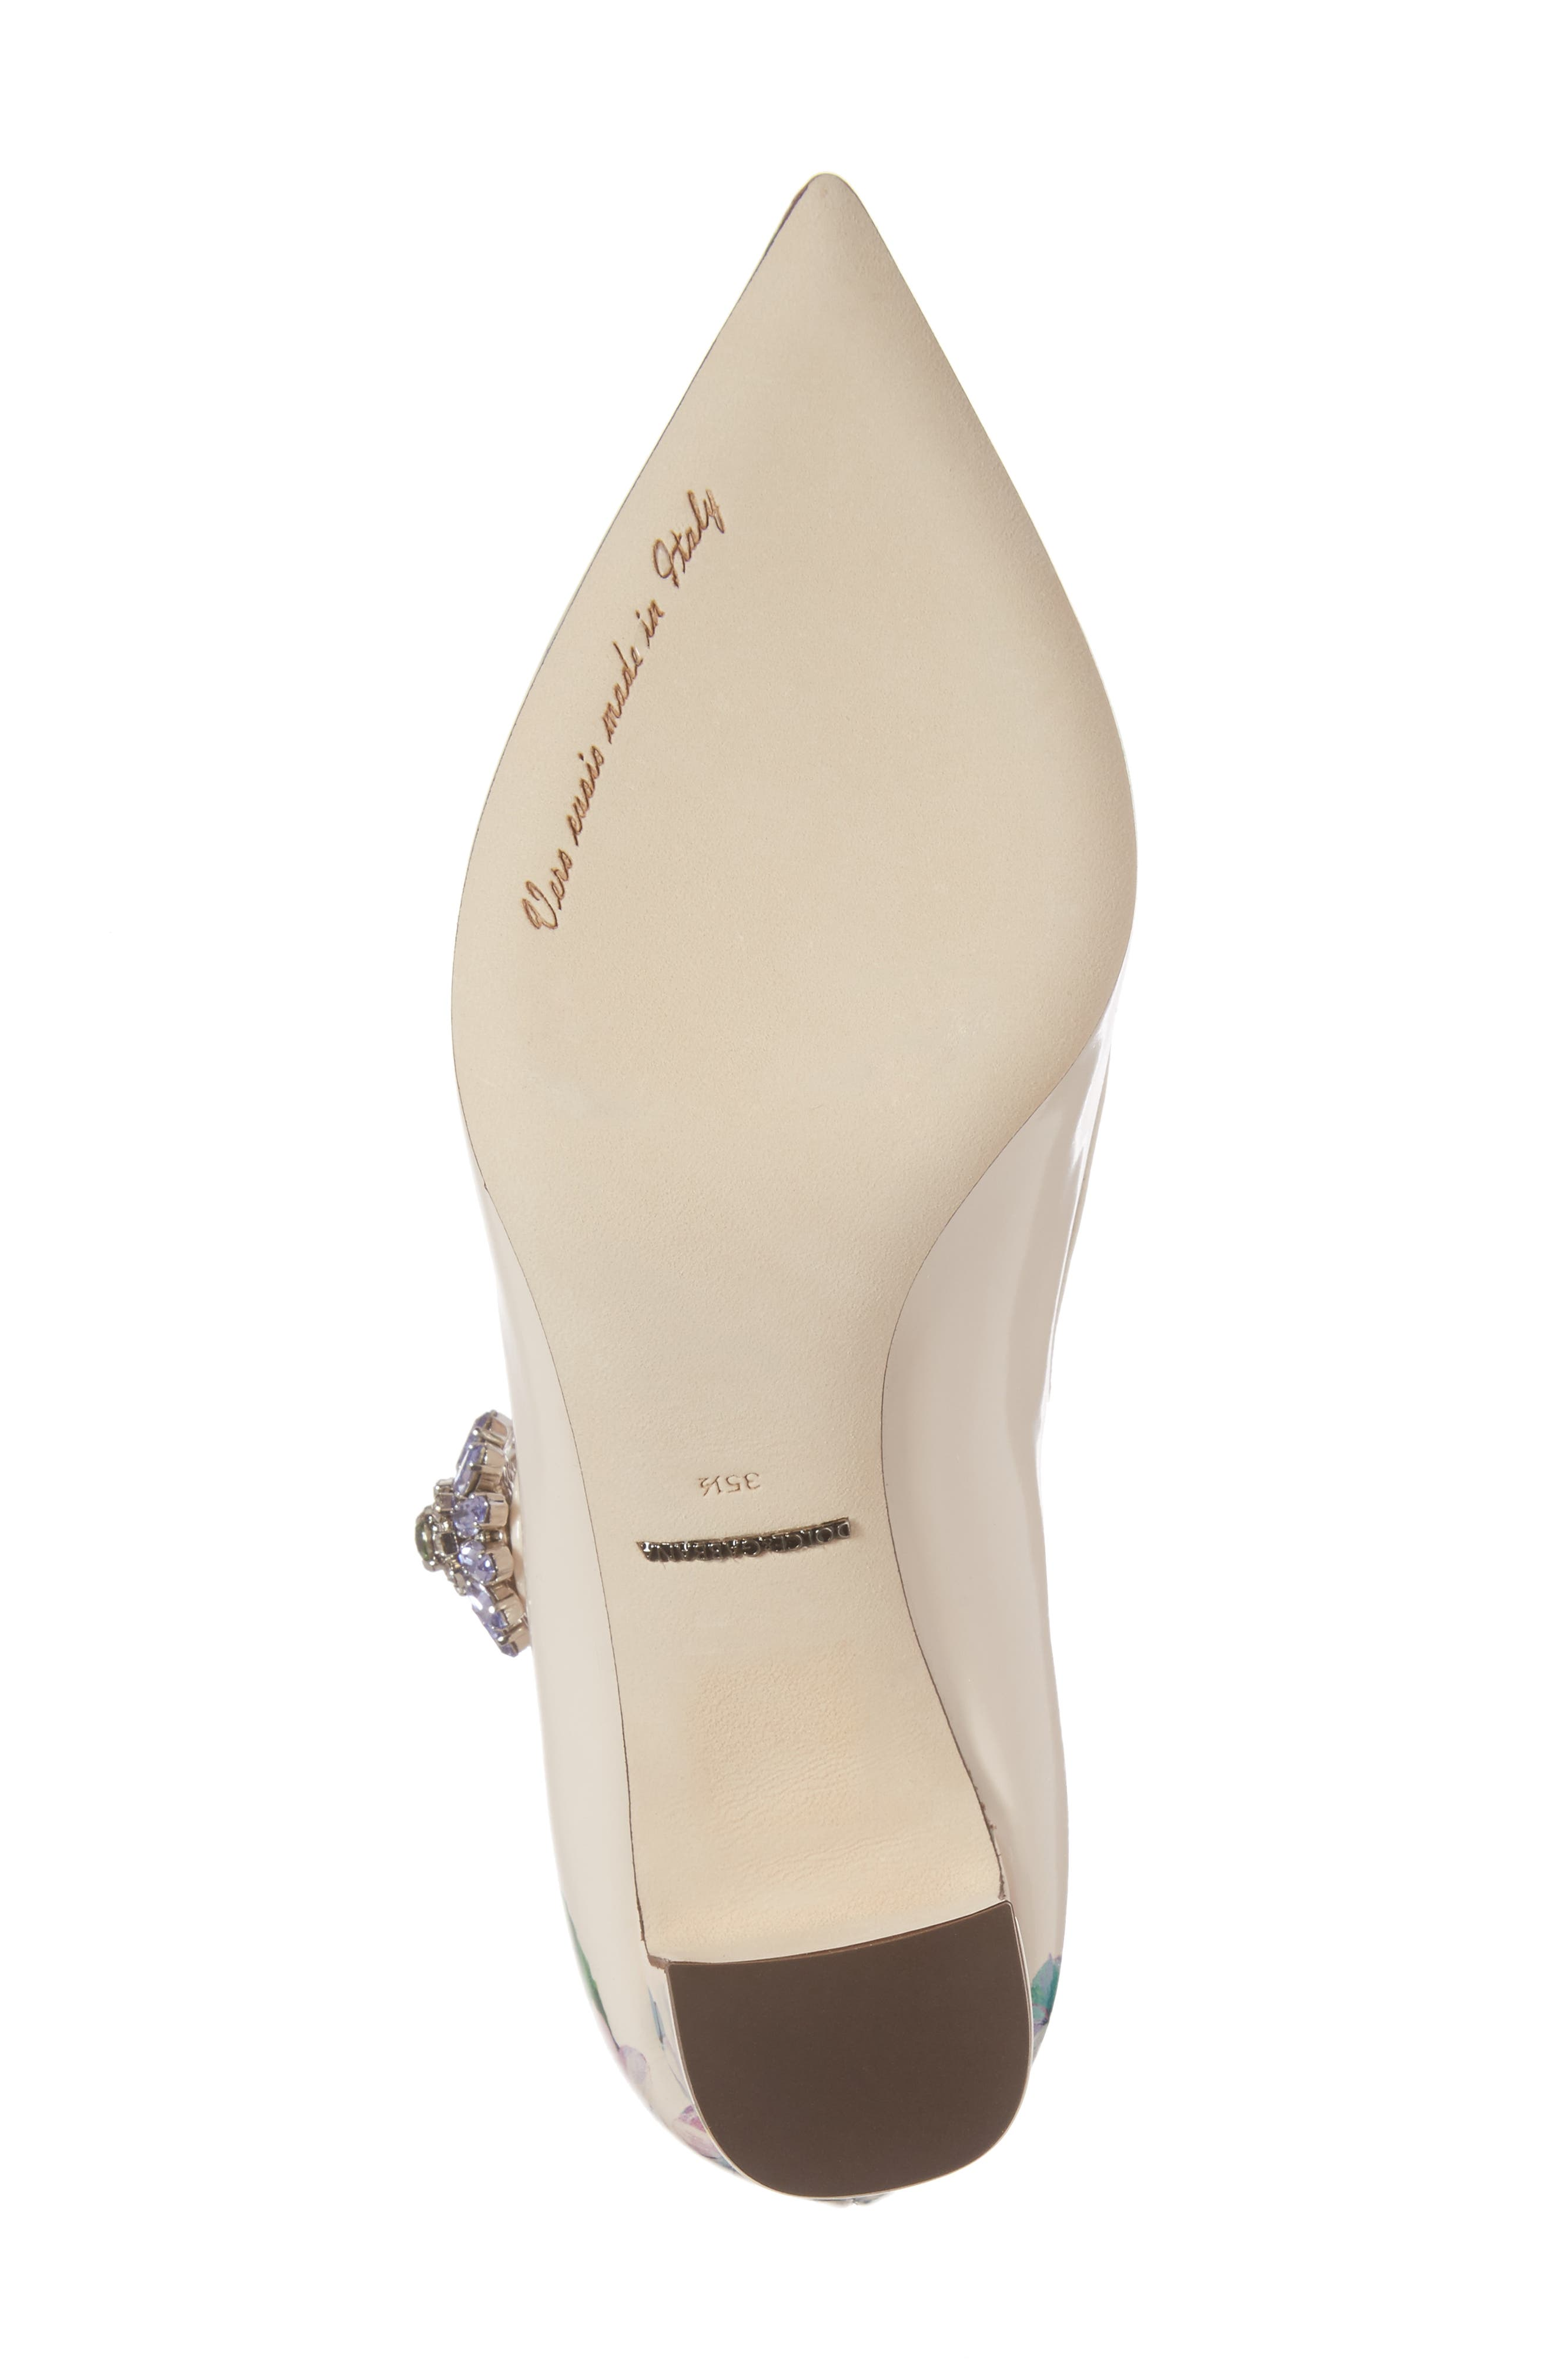 Hydrangea Mary Jane Pump,                             Alternate thumbnail 6, color,                             White Floral